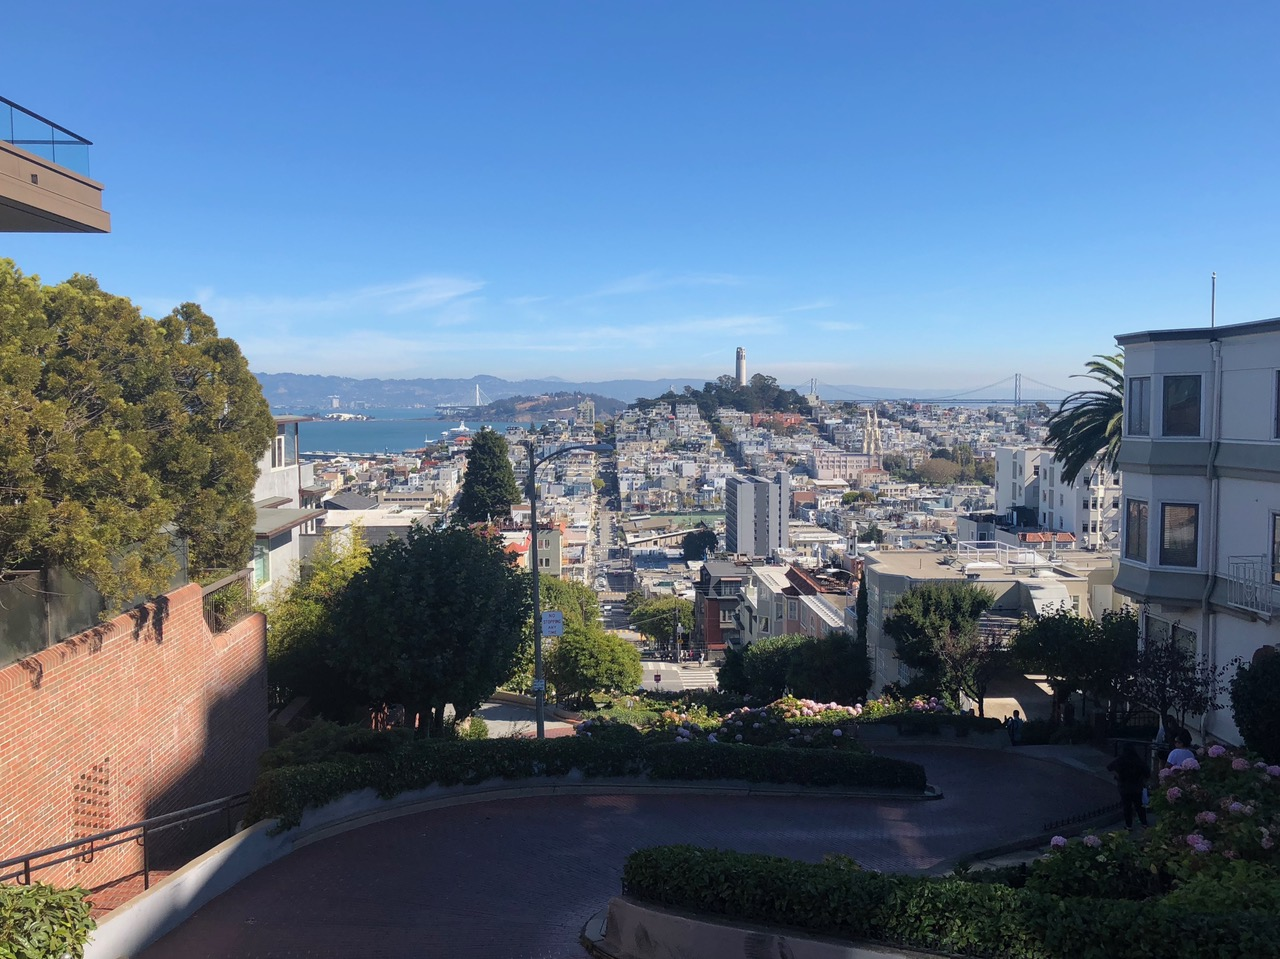 At the top of the famous Lombard Street looking down into the City